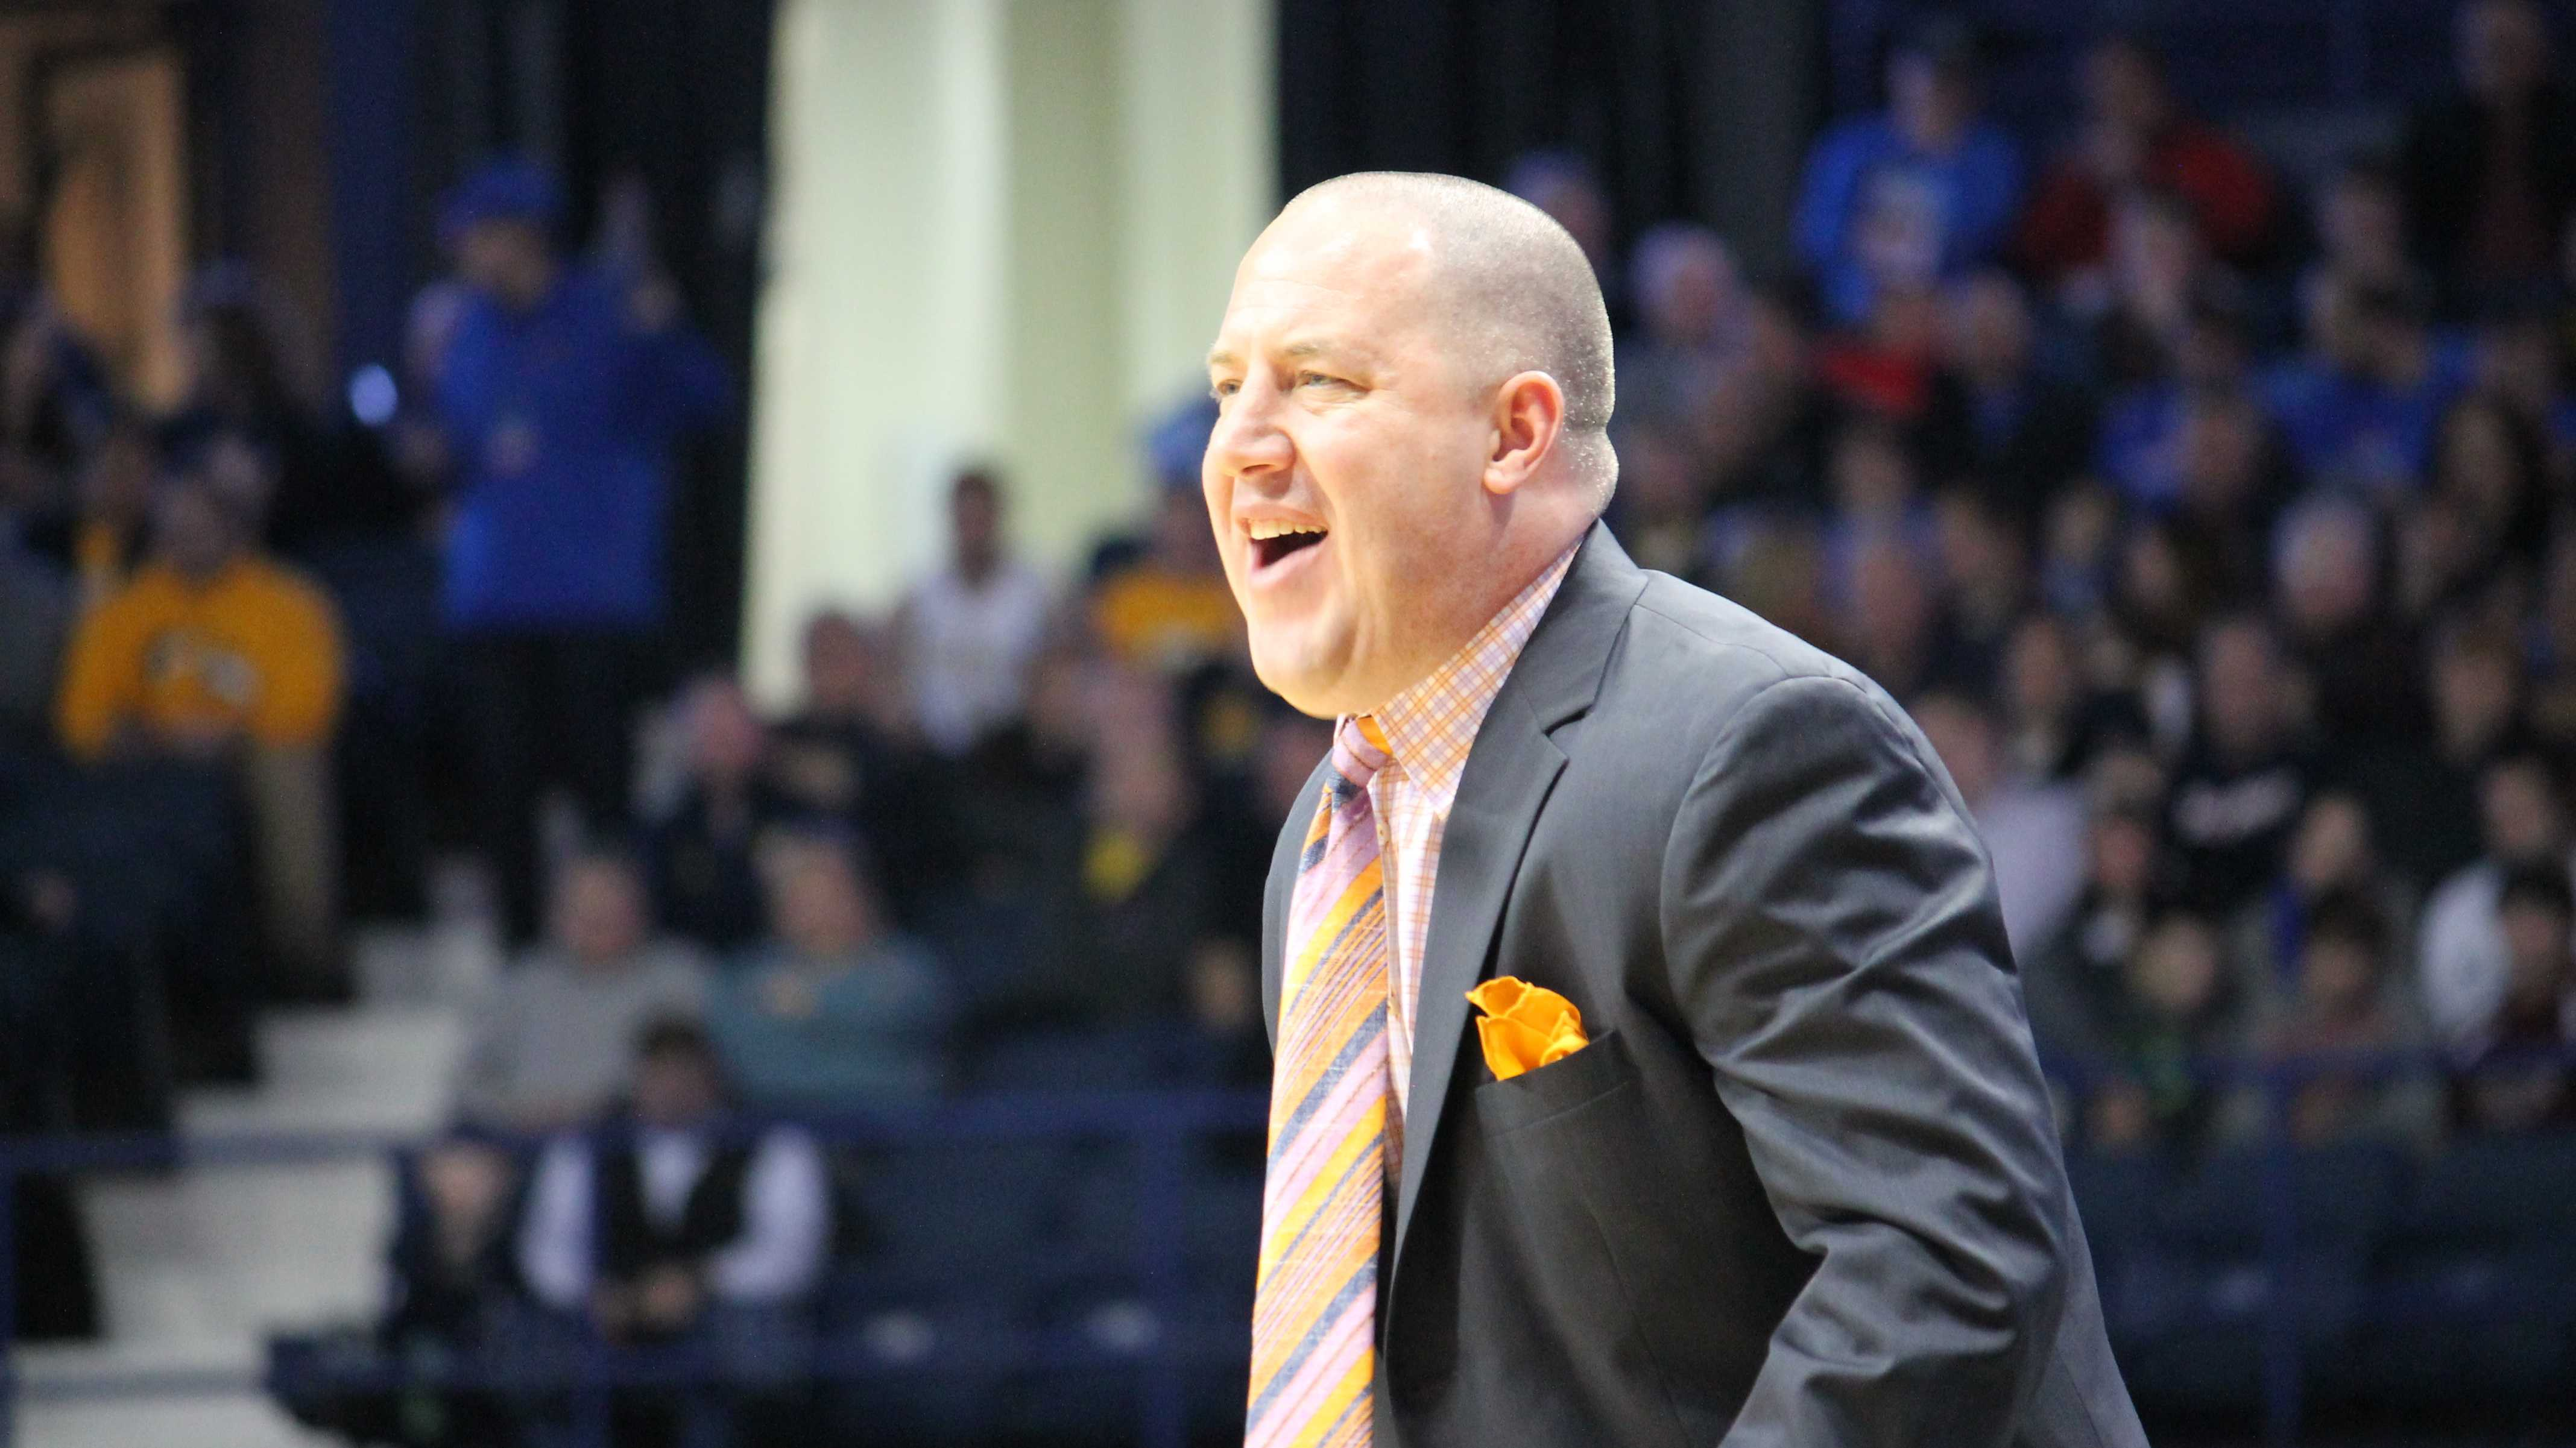 Buzz Williams during Marquette's game at DePaul on 2/22/14. (Photo by Francesca Reed / francesca.reed@marquette.edu)